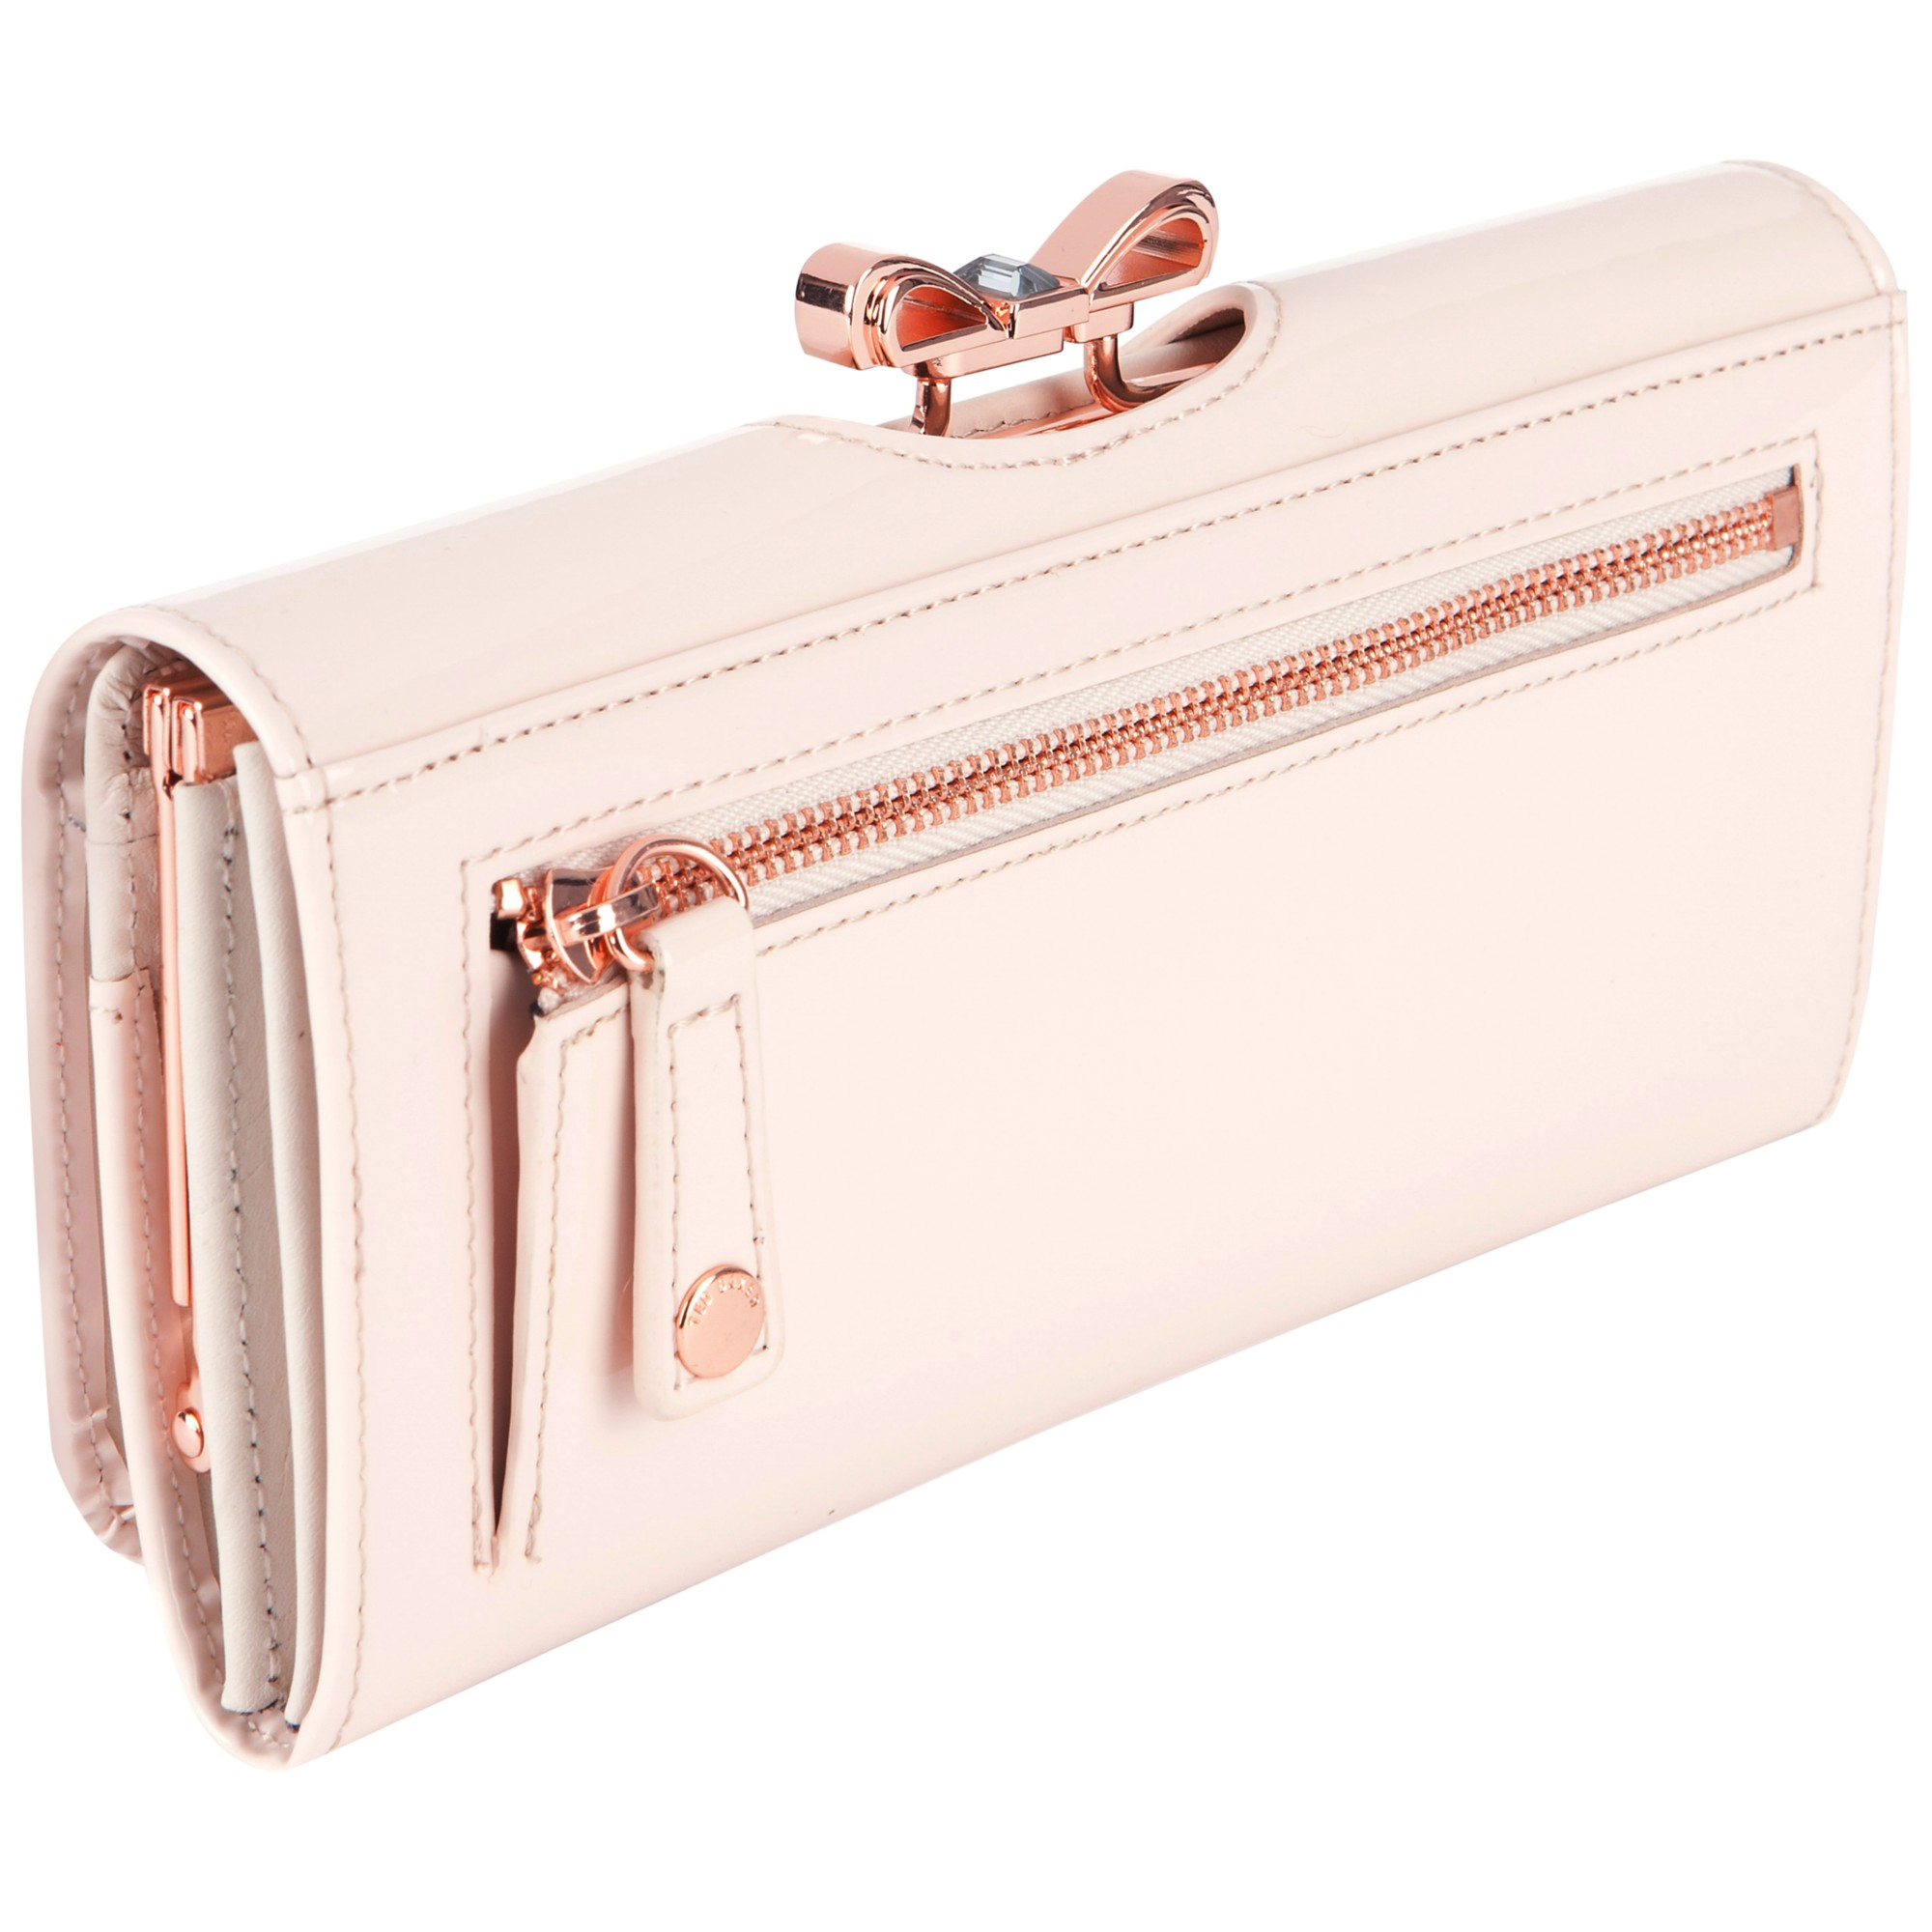 a35b0c692f6b0 Ted Baker Lindar Bow Bobble Leather Purse in Pink - Lyst